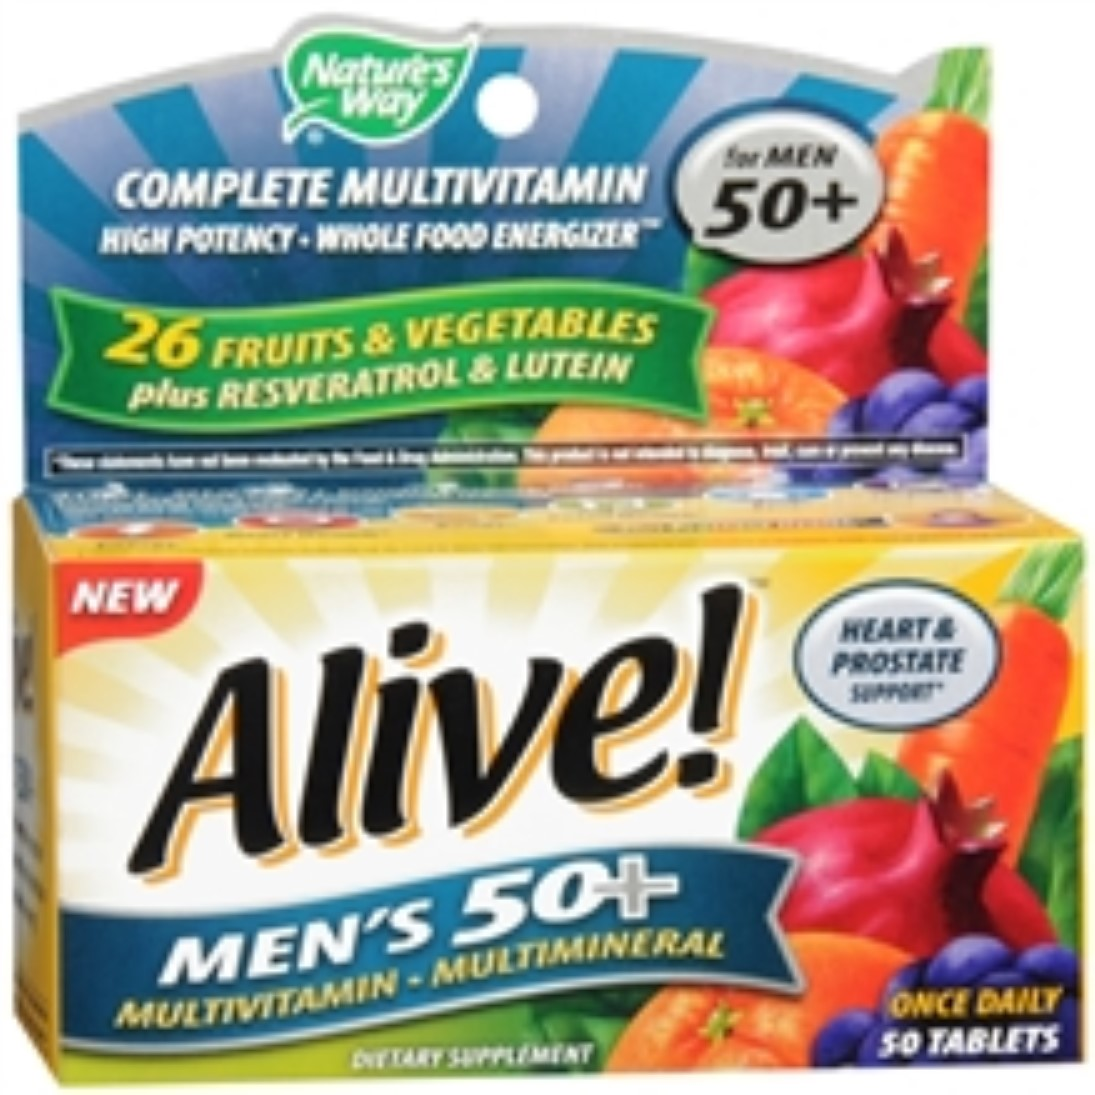 Alive! Nature's Way Once Daily Men's 50+ High Potency Multivitamin 50 ea (Pack of 3)